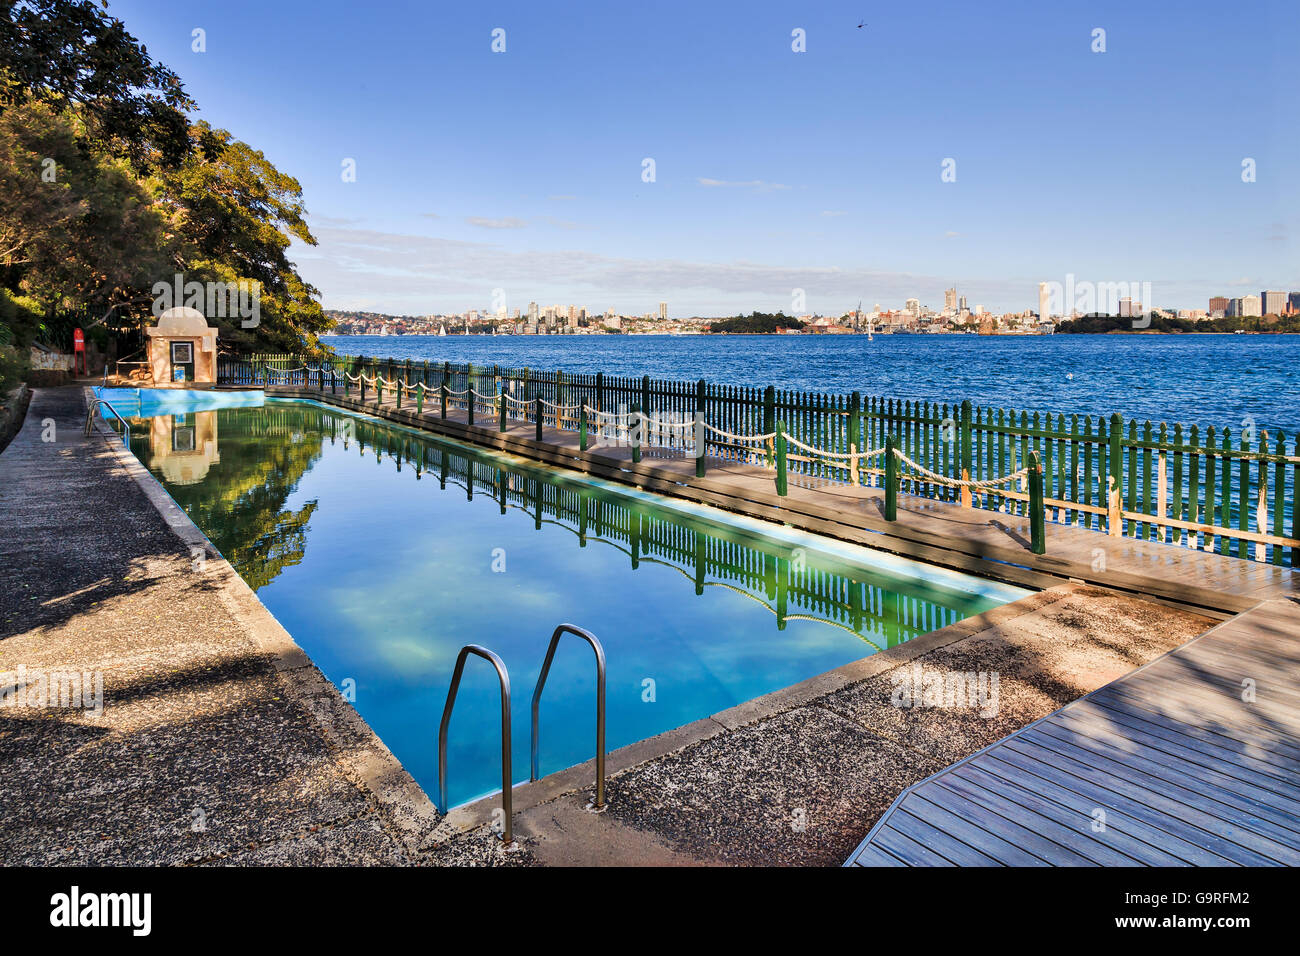 Public communal rock pool at Cremorne on a shore of Sydney harbour. Recreational sports venue for local residents - Stock Image